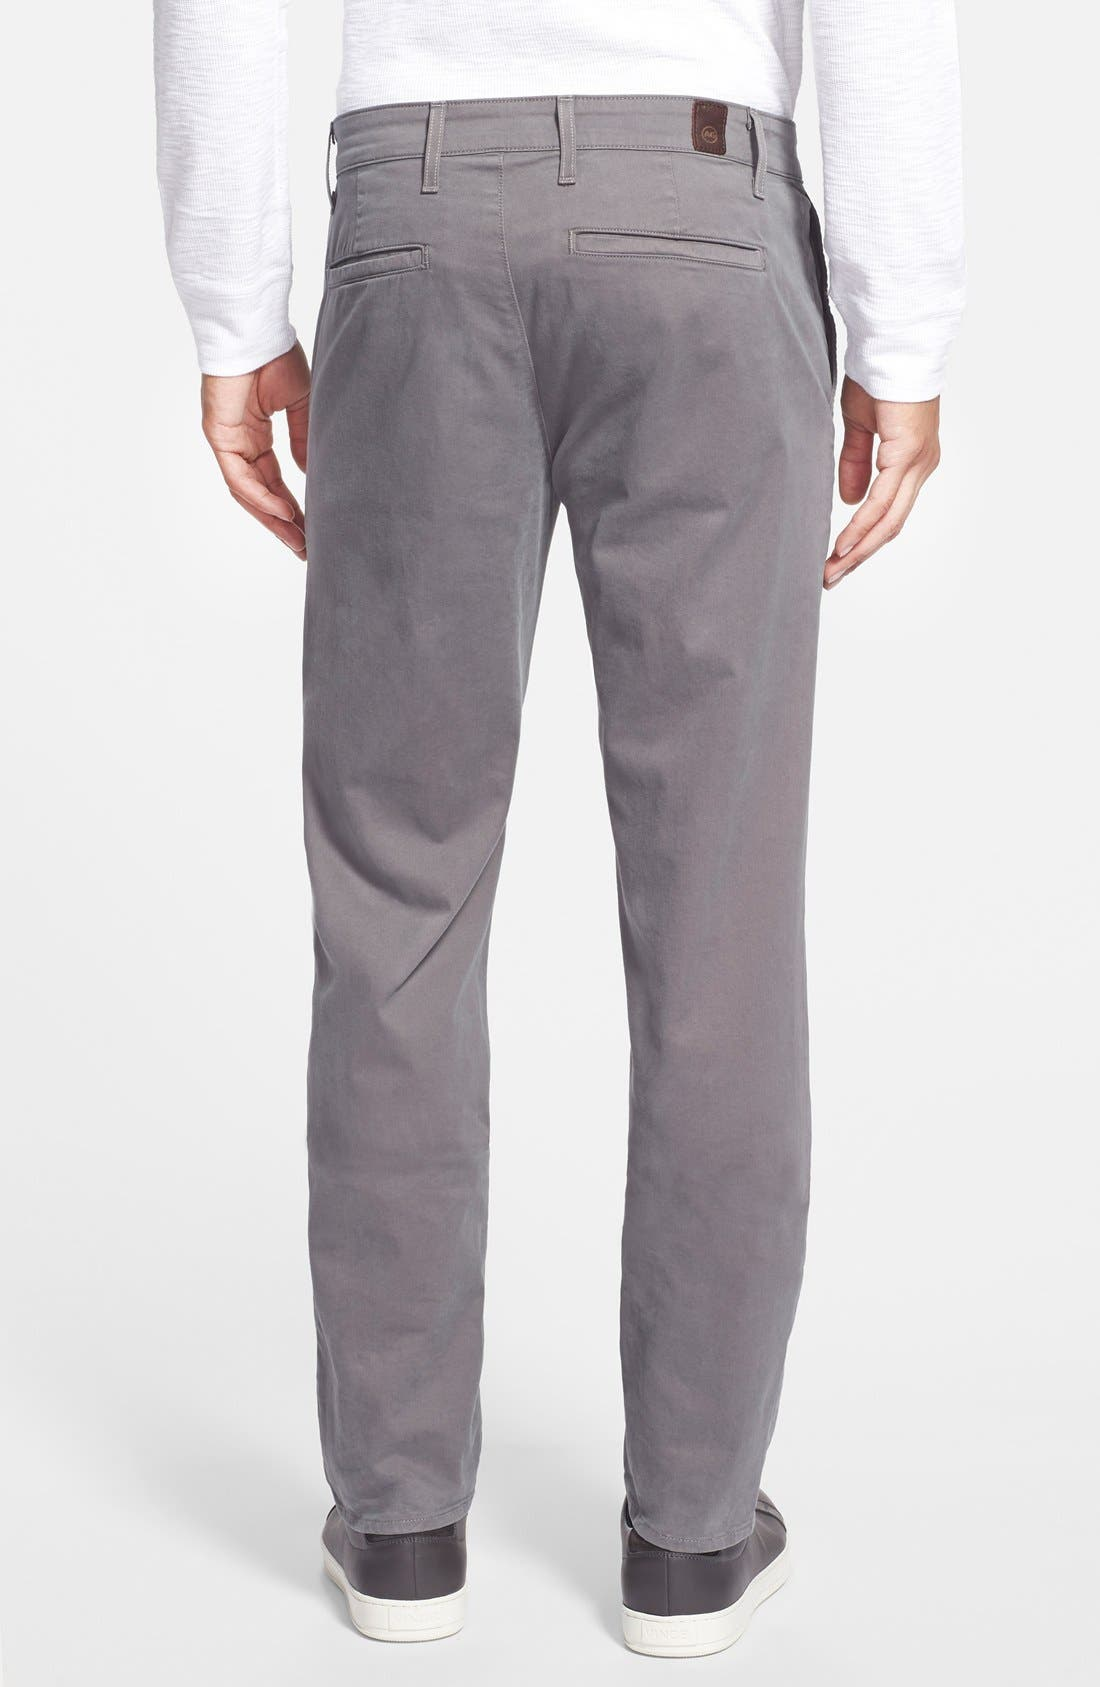 'The Lux' Tailored Straight Leg Chinos,                             Alternate thumbnail 24, color,